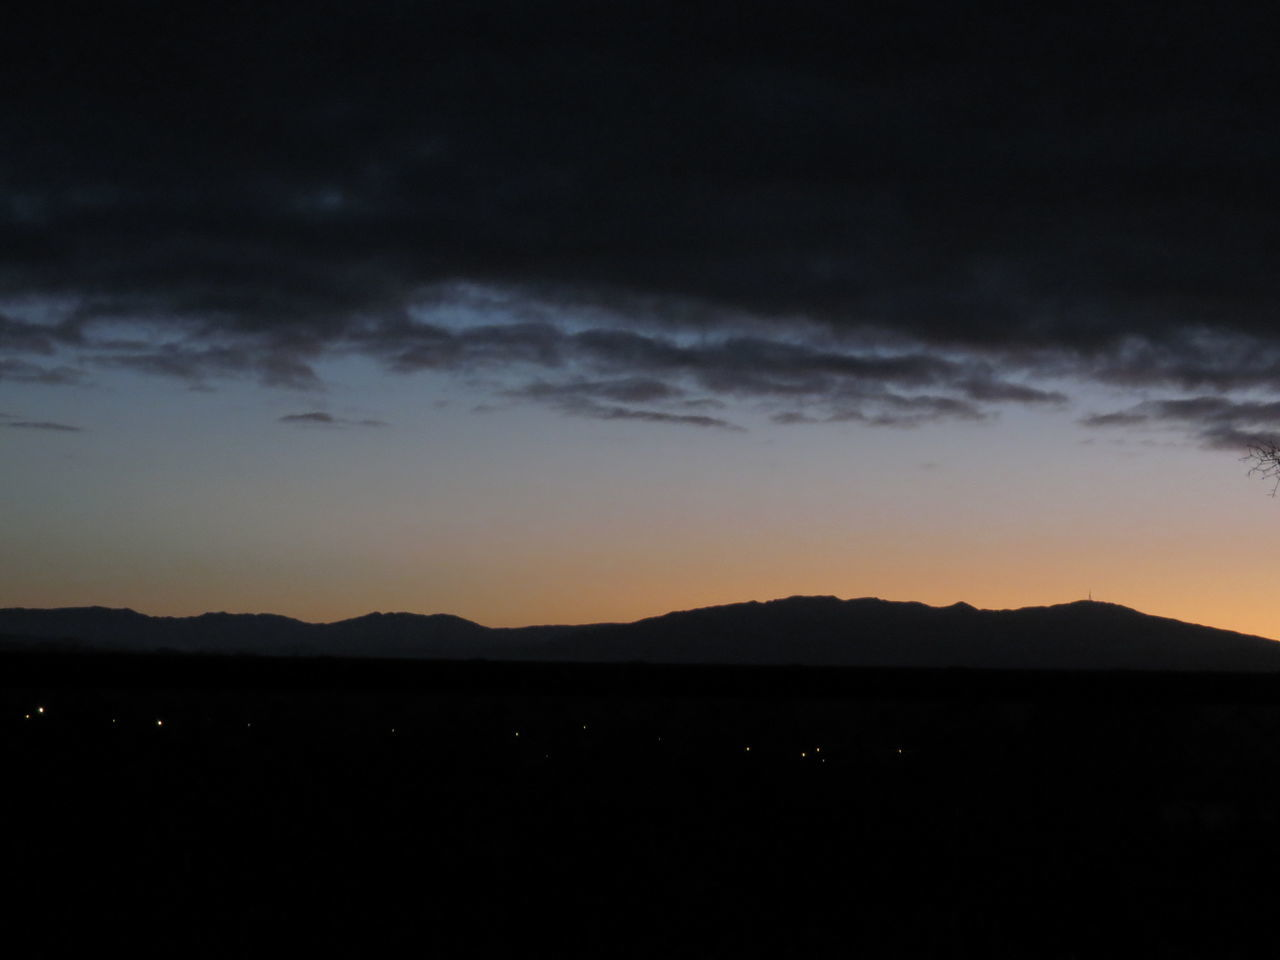 Mountain Silhouette Nature Beauty In Nature Sky Sunset Night Moon Unedited Unfiltered Scenic Lookout Morning Dawn Sunrise Tararua Ranges Travel Destinations Peace Travel No People Desert Scenics Outdoors Landscape Star - Space Astronomy